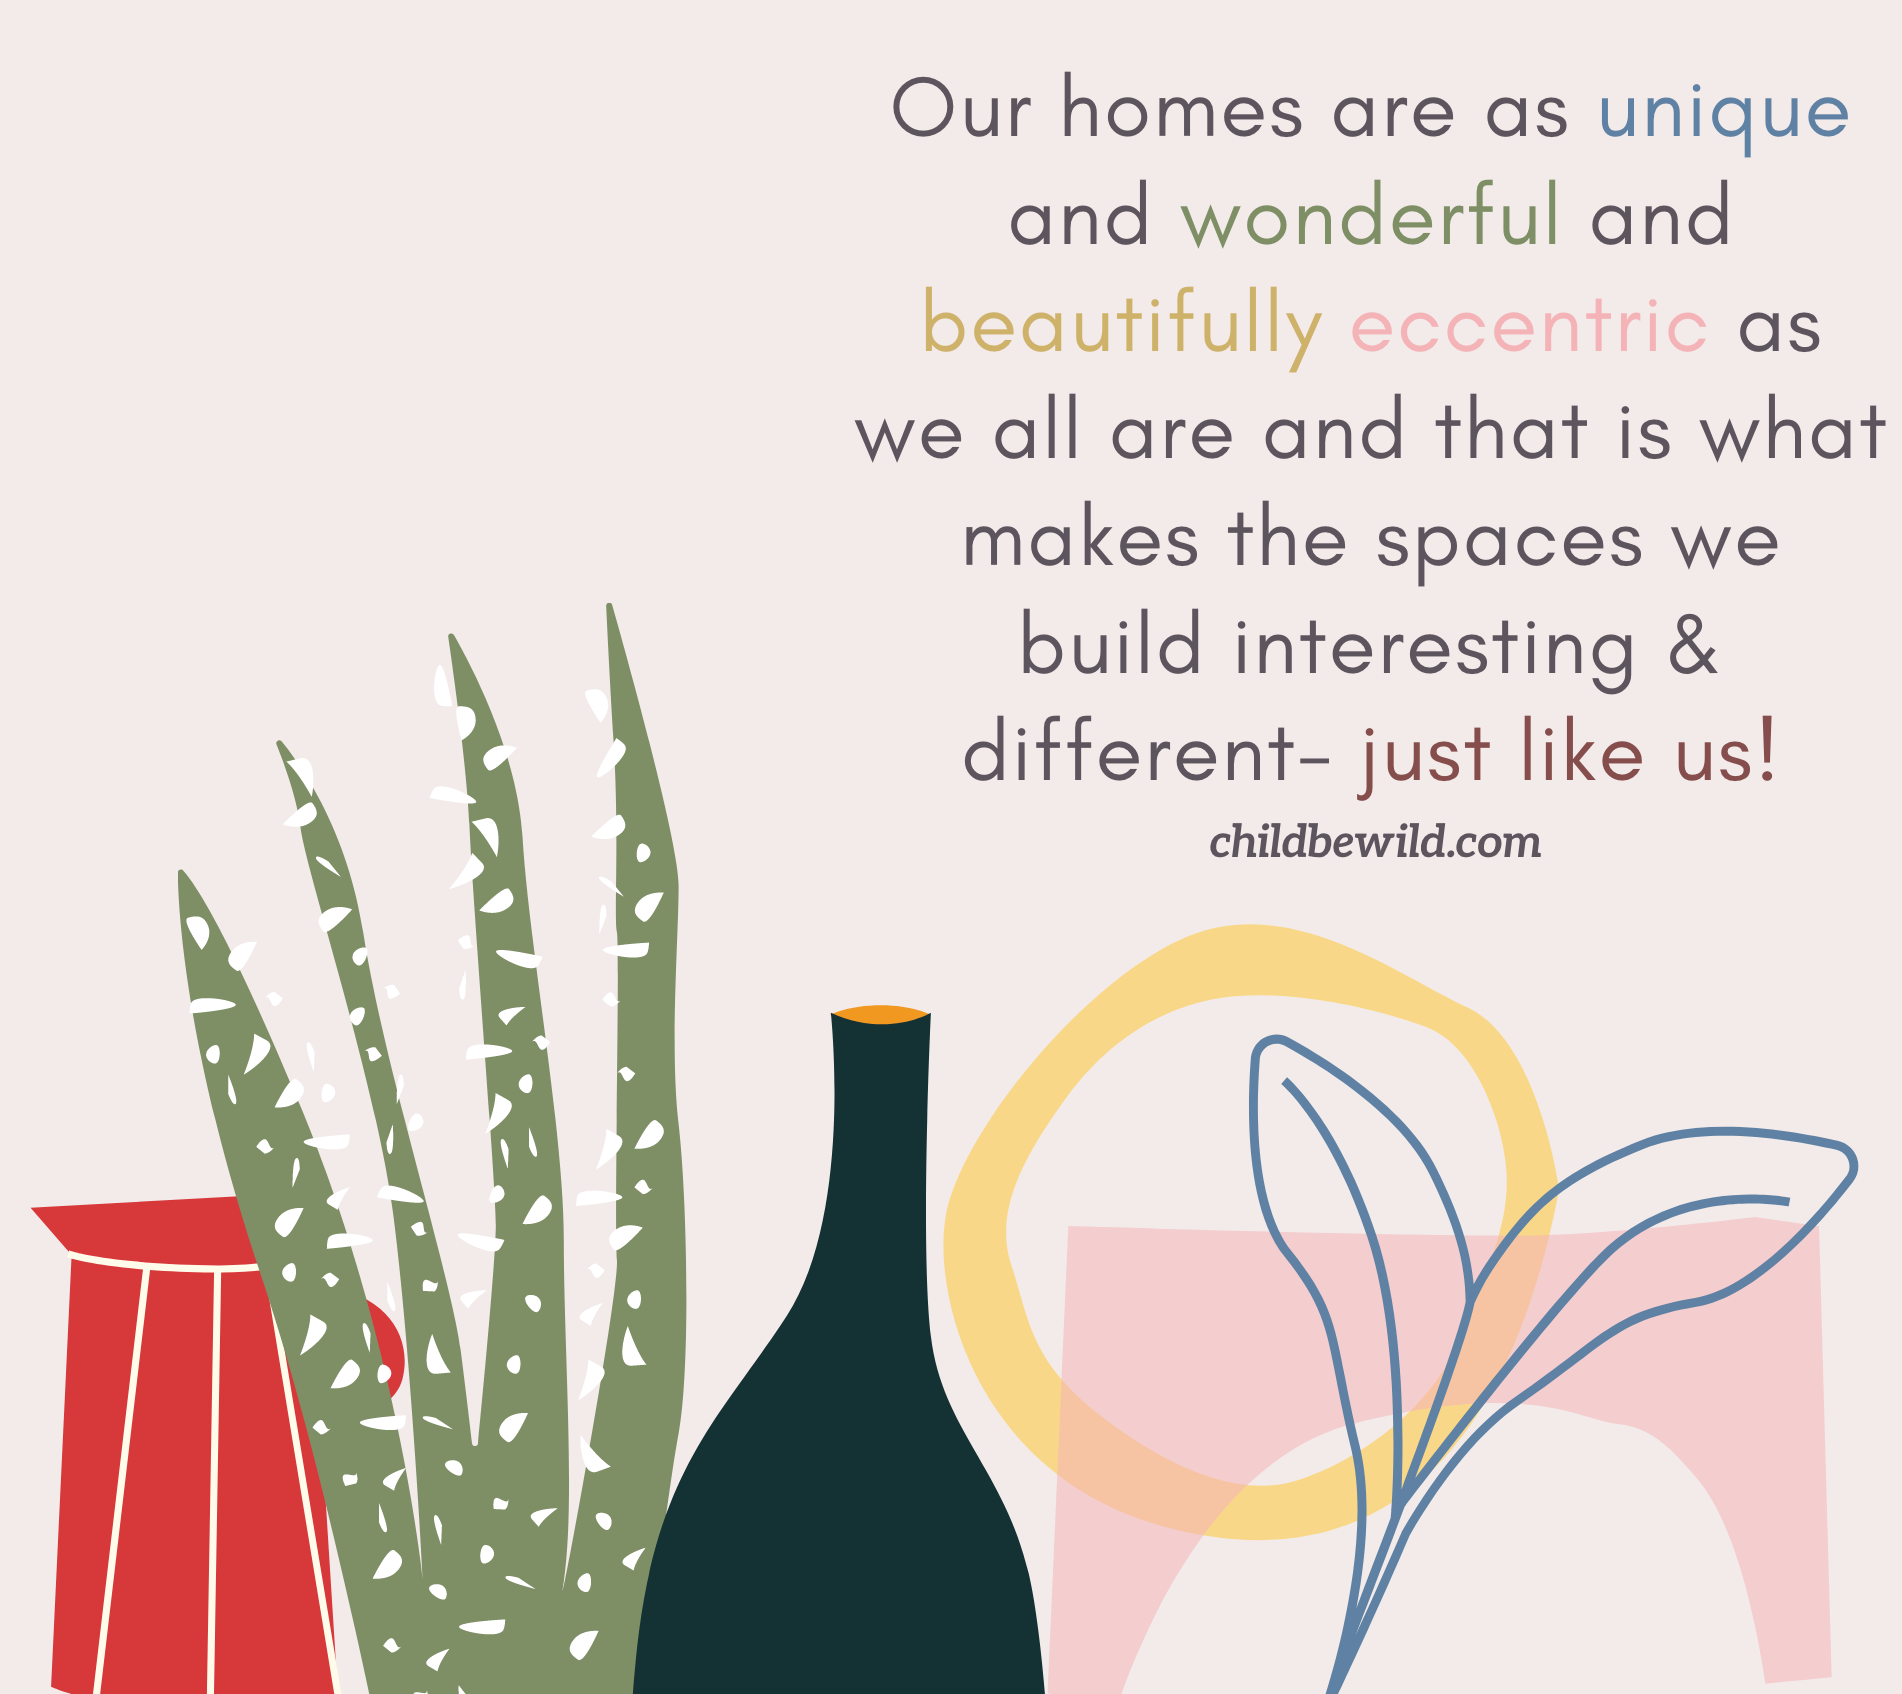 Our homes are as unique and wonderful and beautifully eccentric as we all are and that is what makes the spaces we build interesting & different- just like us! childbewild.com text above home decor illustration